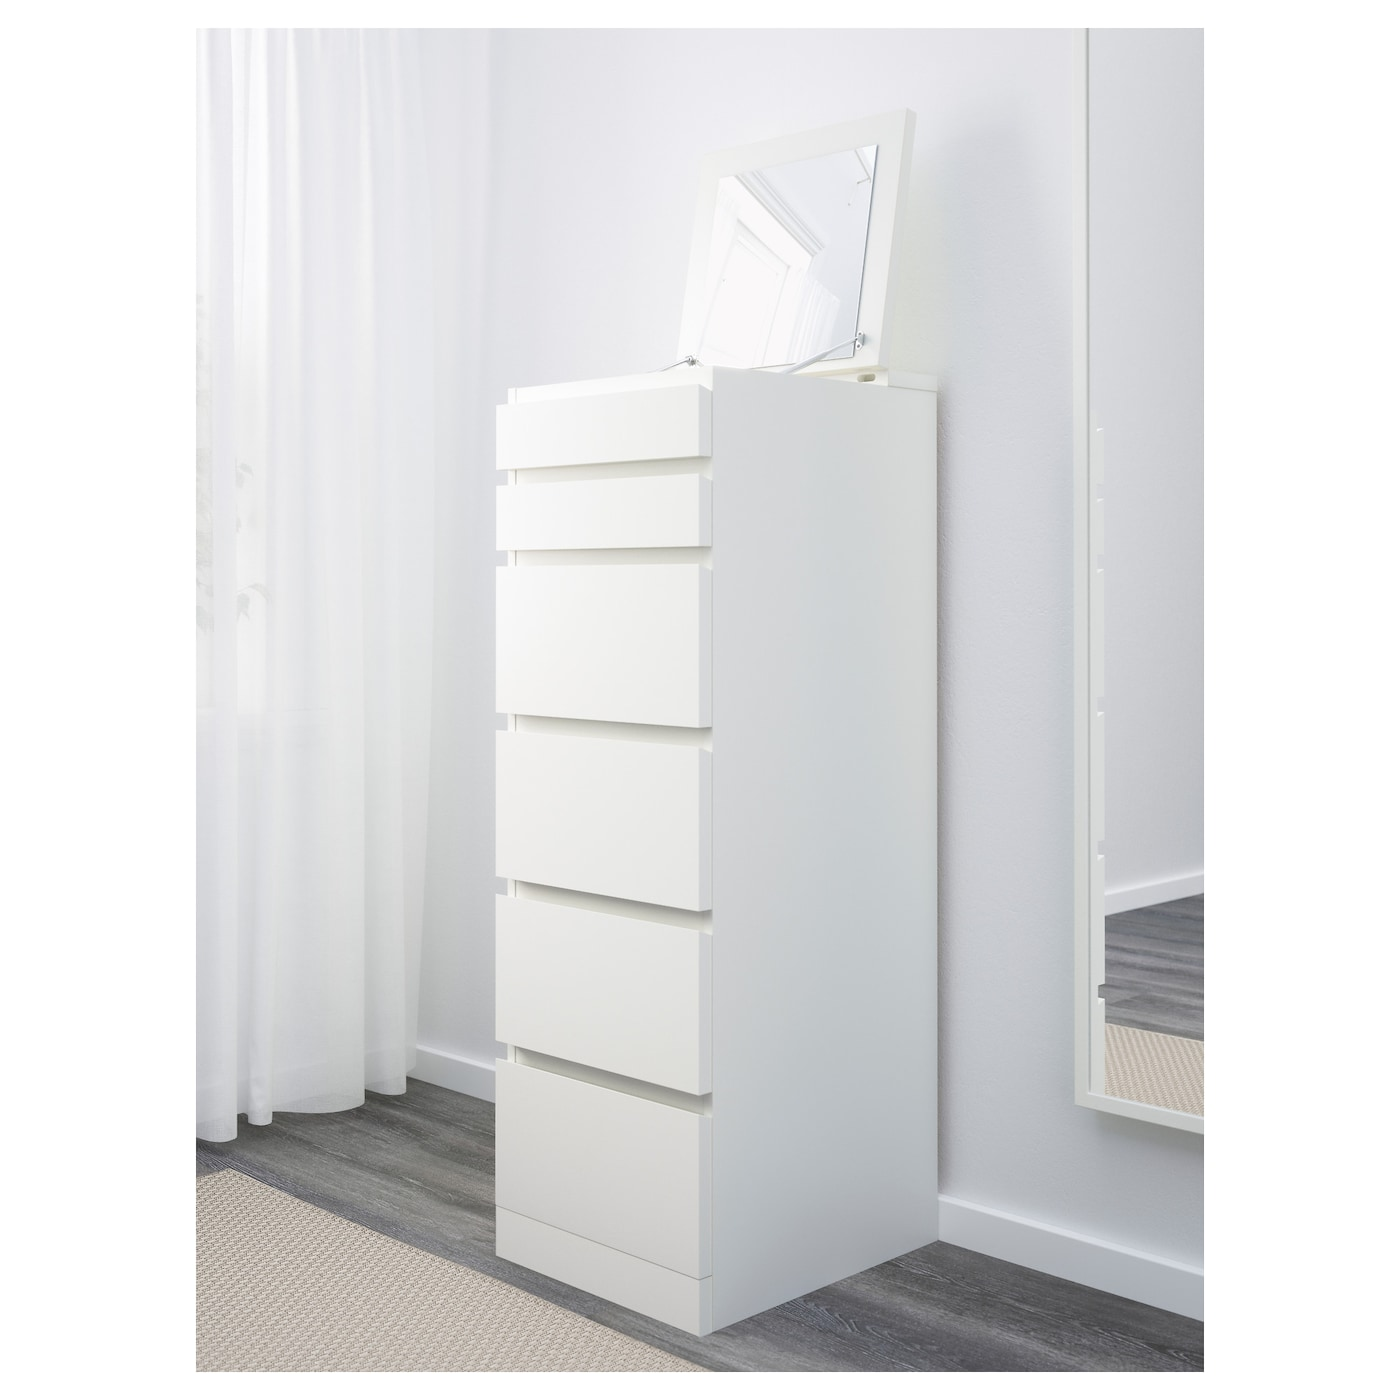 Malm Chest Of 6 Drawers White Mirror Glass 40x123 Cm Ikea